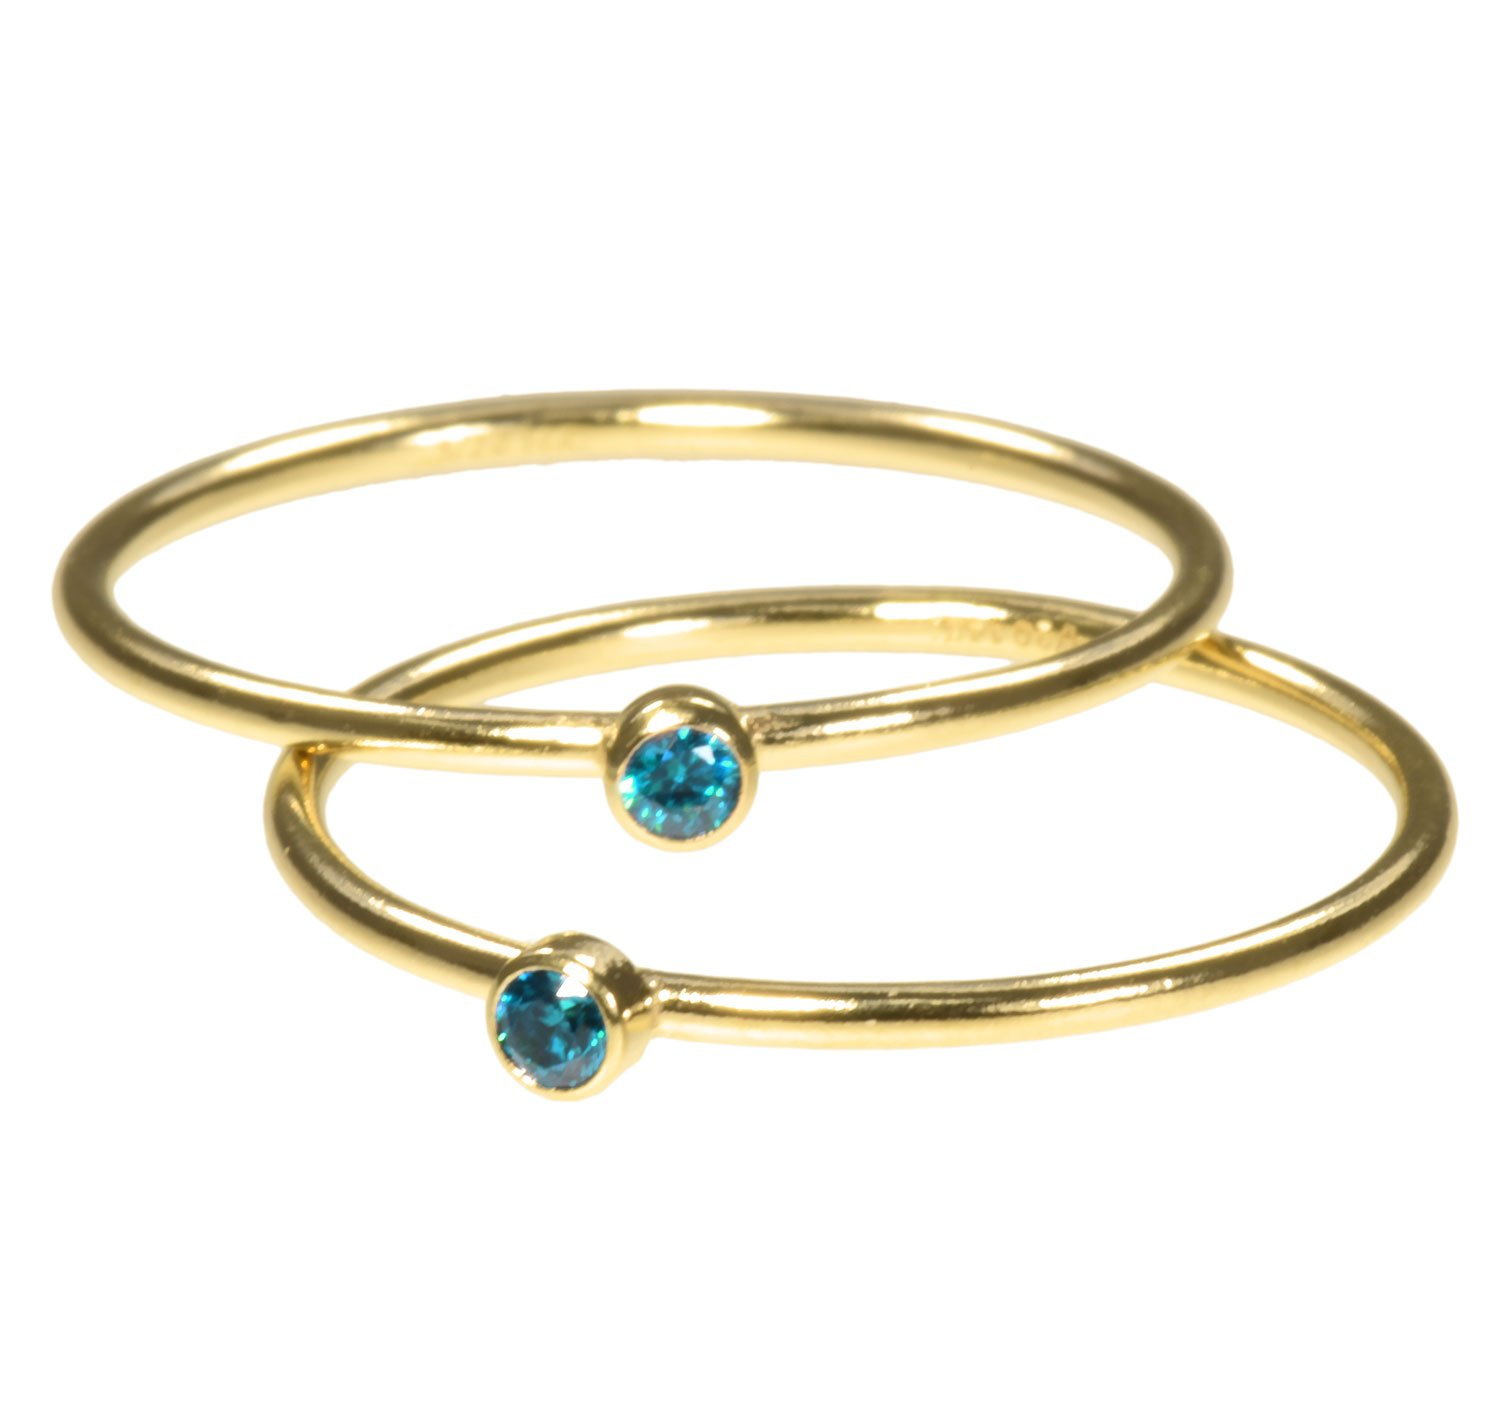 uGems 2 14K Gold Filled Aqua Blue CZ Stacking Rings Size 5